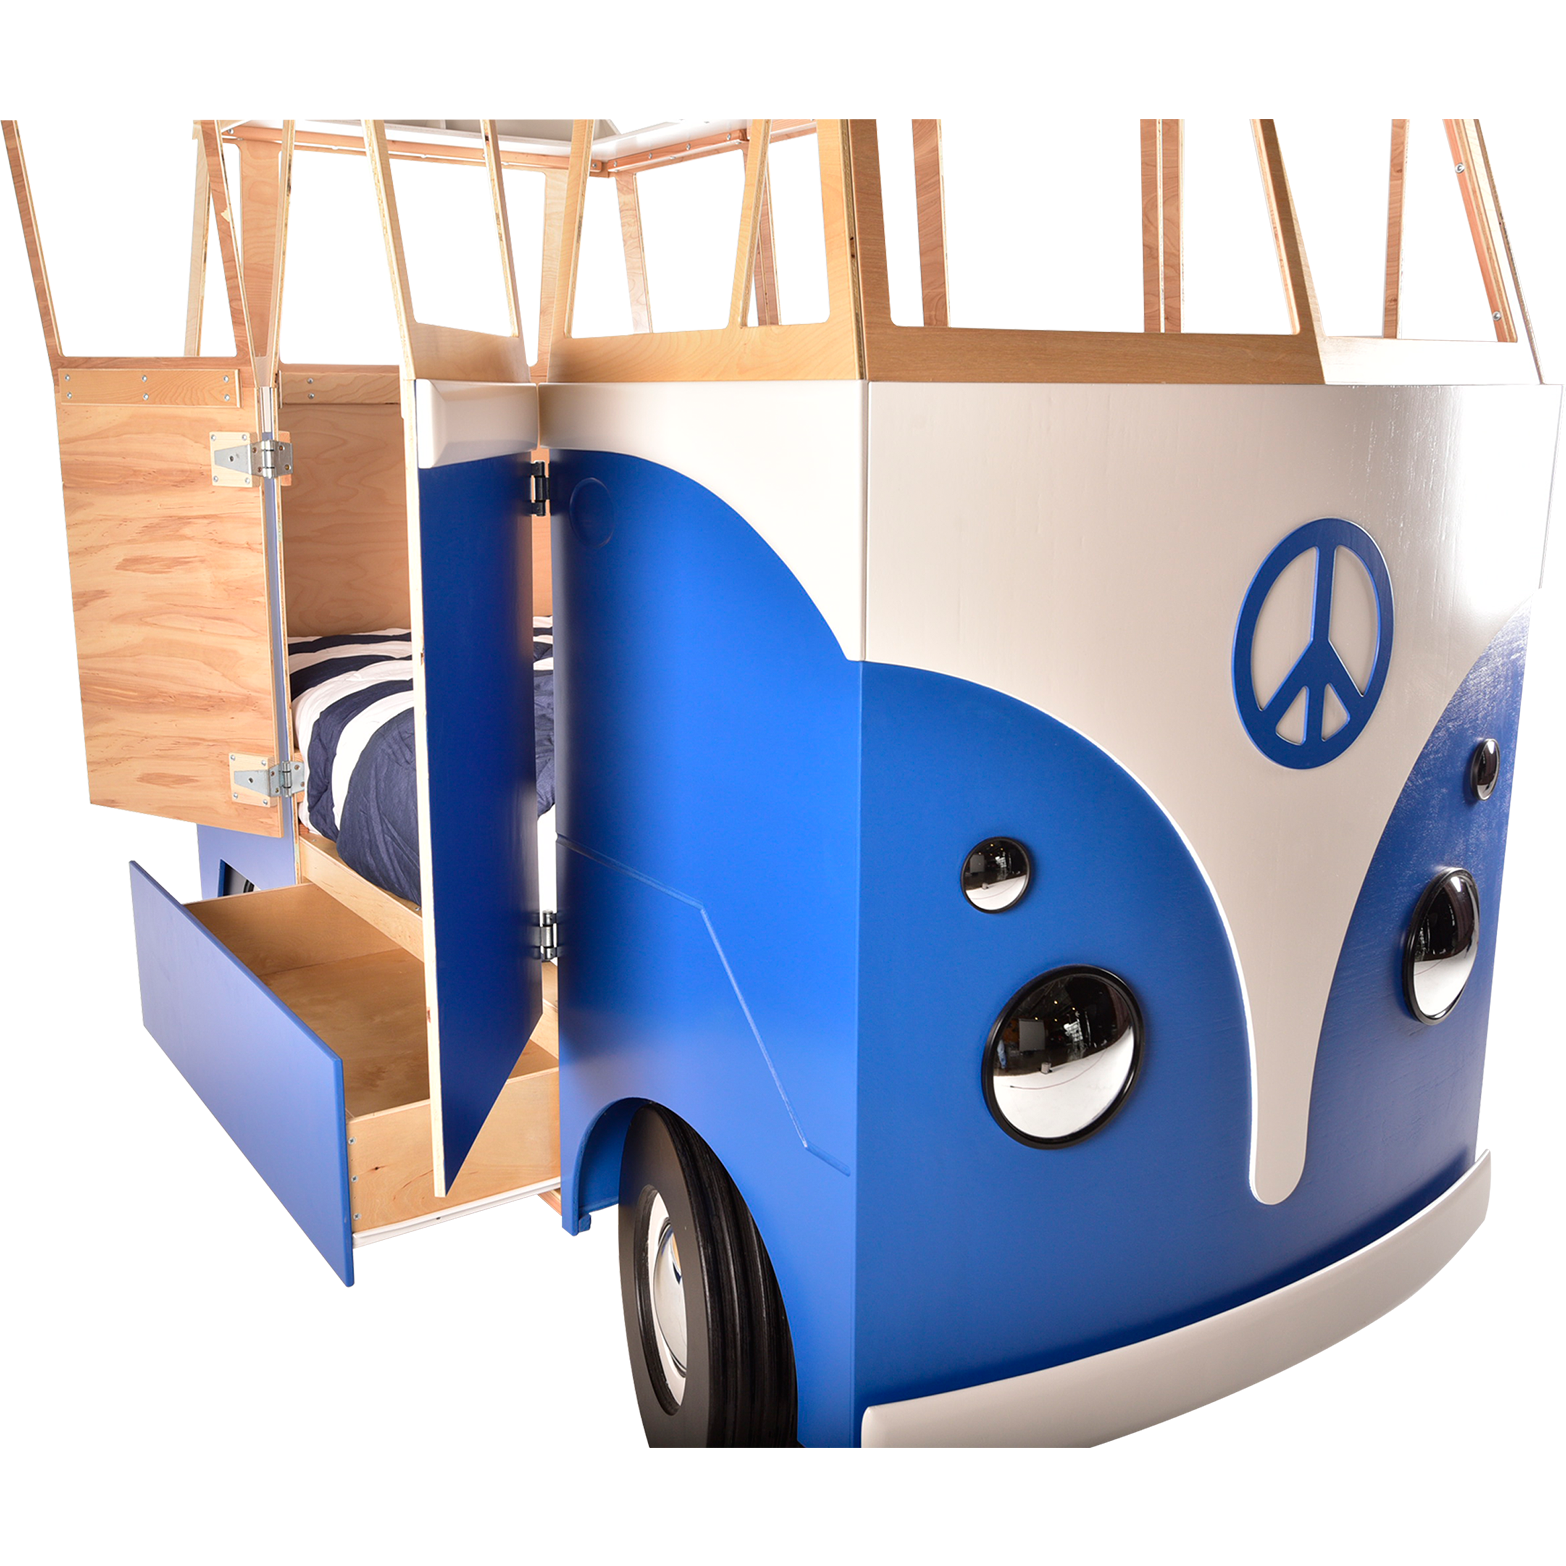 Nap clipart childrens bed. The leon bus by